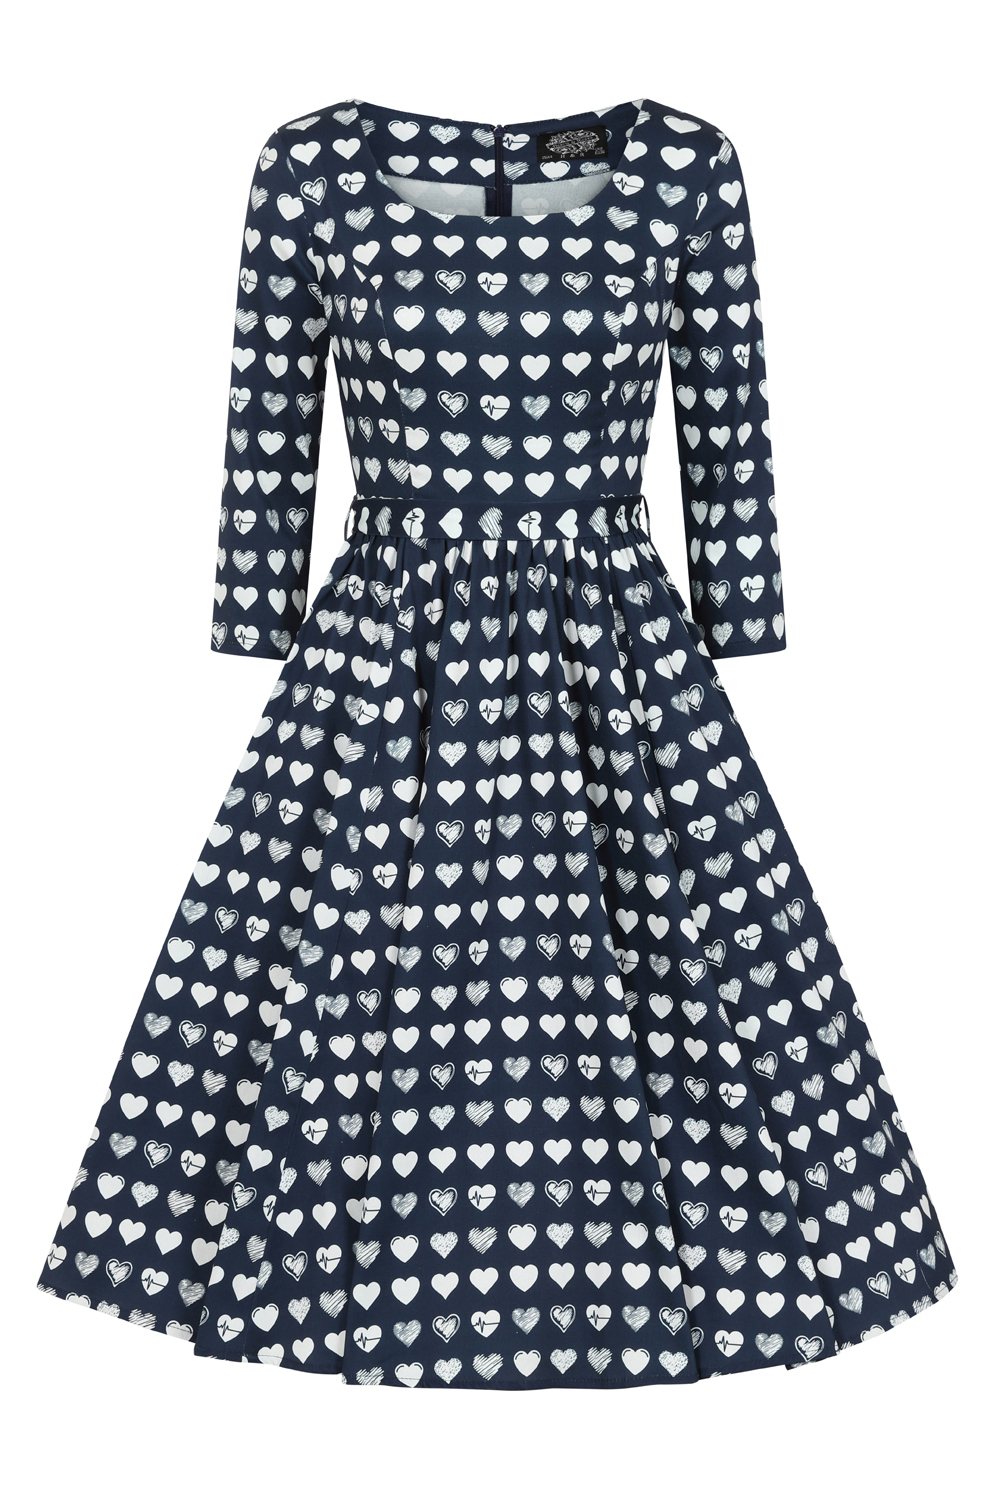 Hearts & Roses Piper Swing Dress 209 F